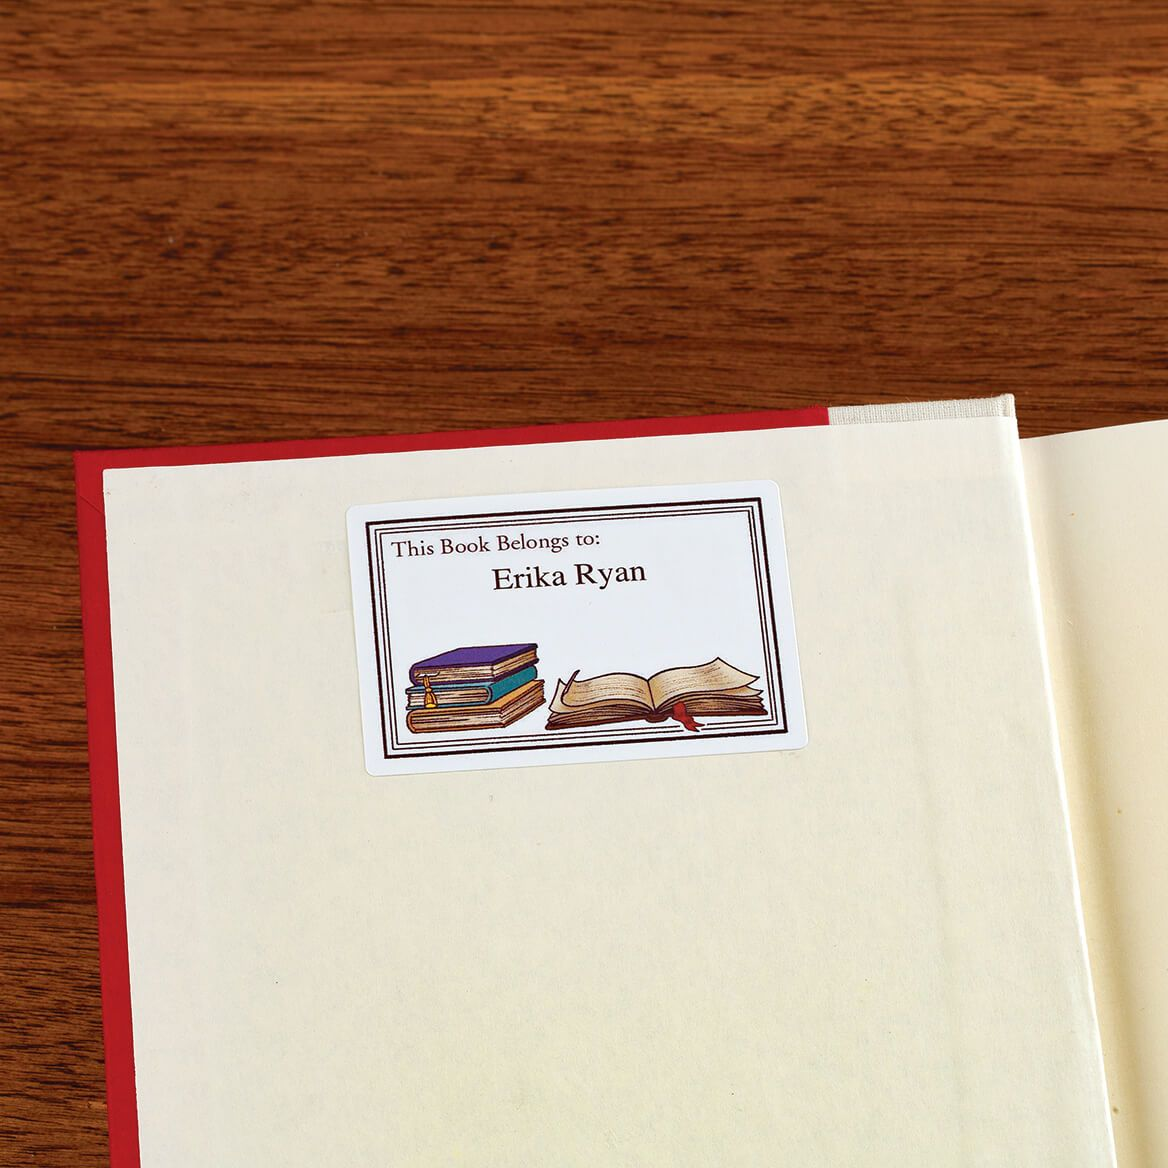 Personalized Book Plates Set of 30-370665